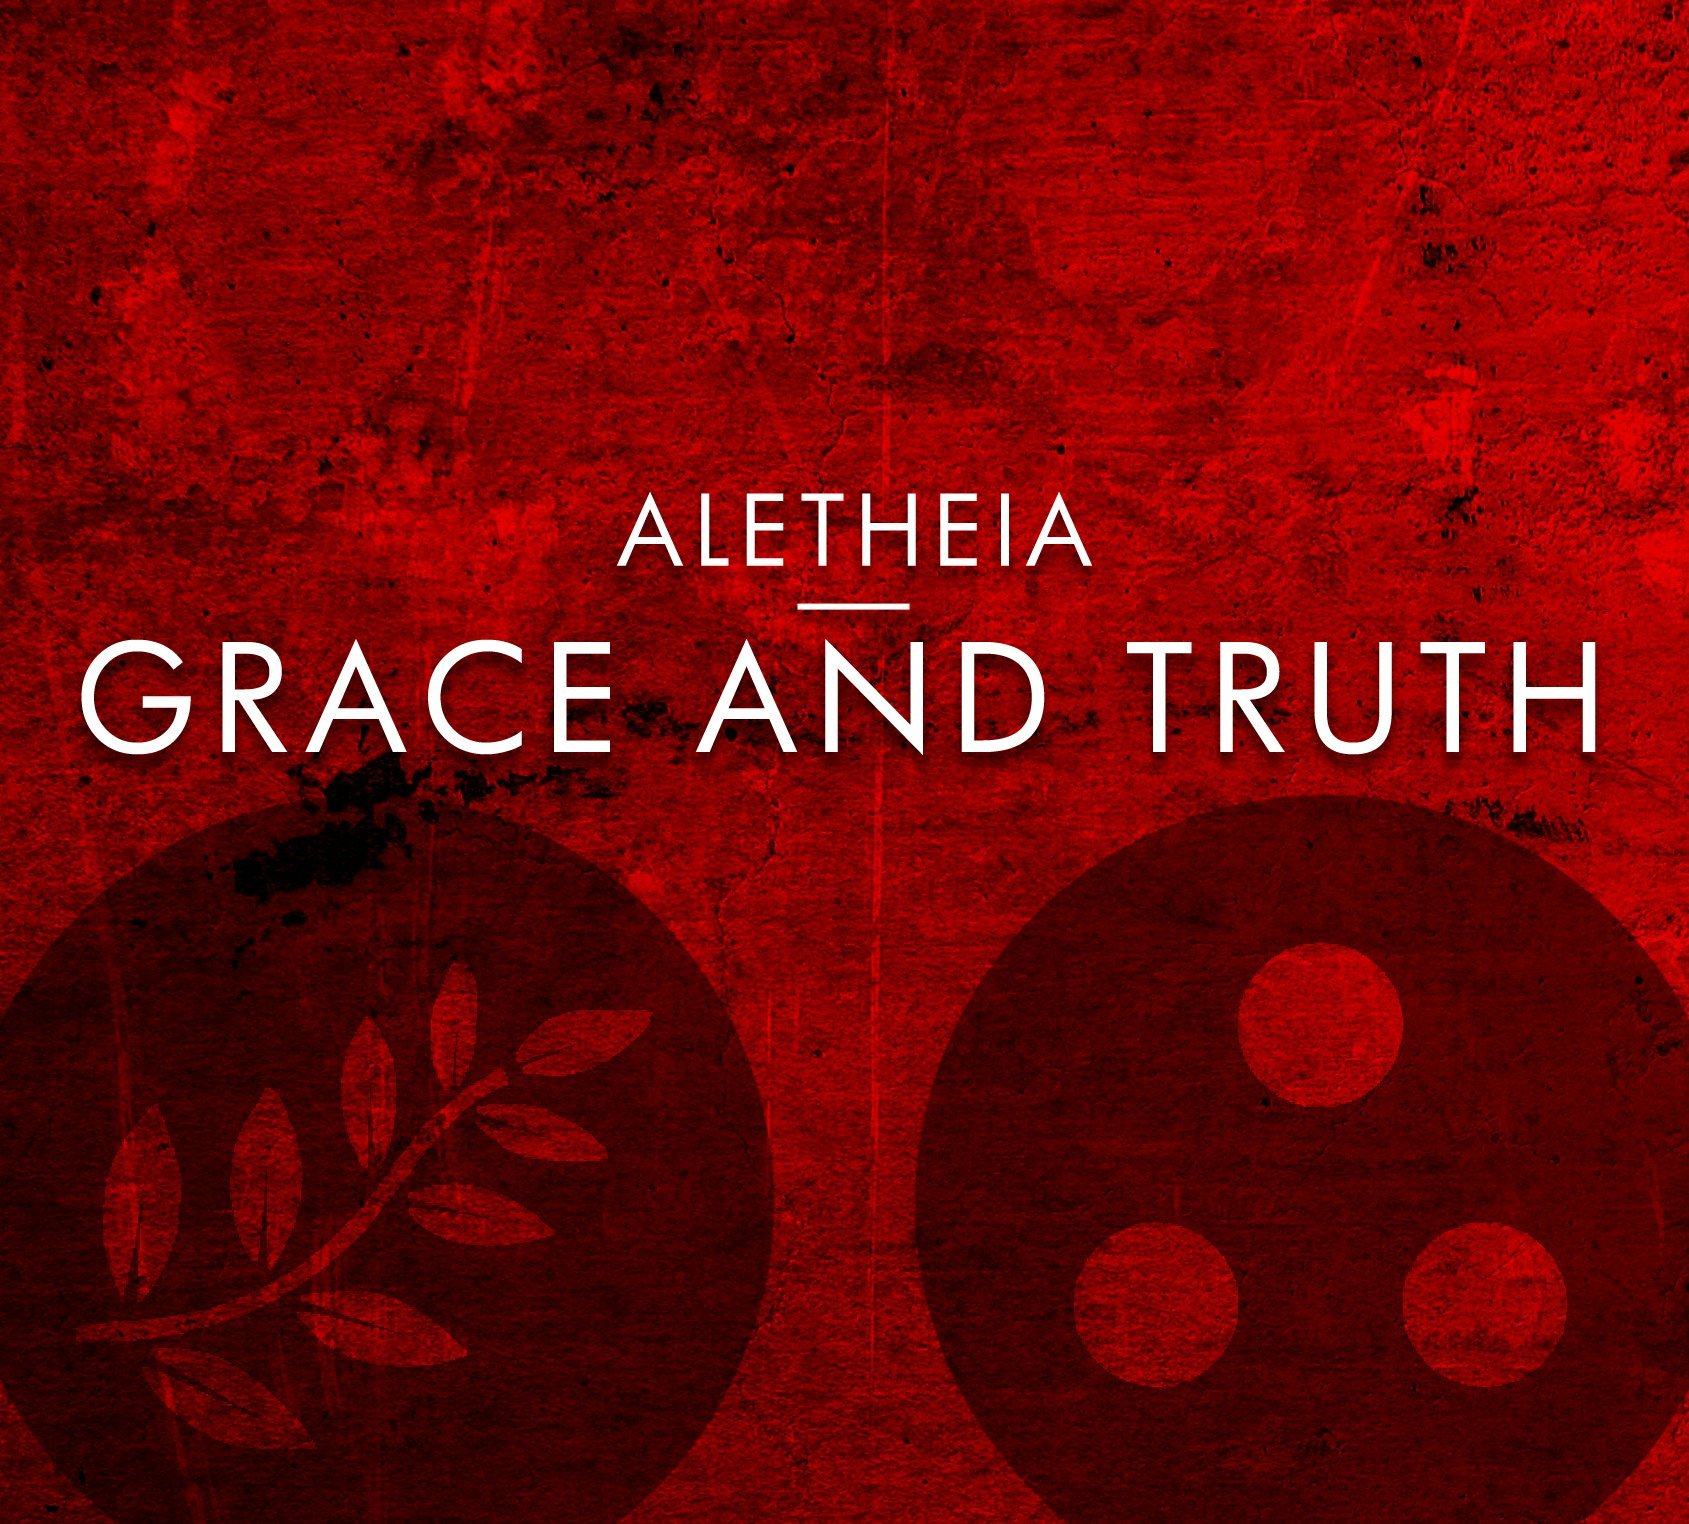 Grace-and-Truth-Cover.jpg